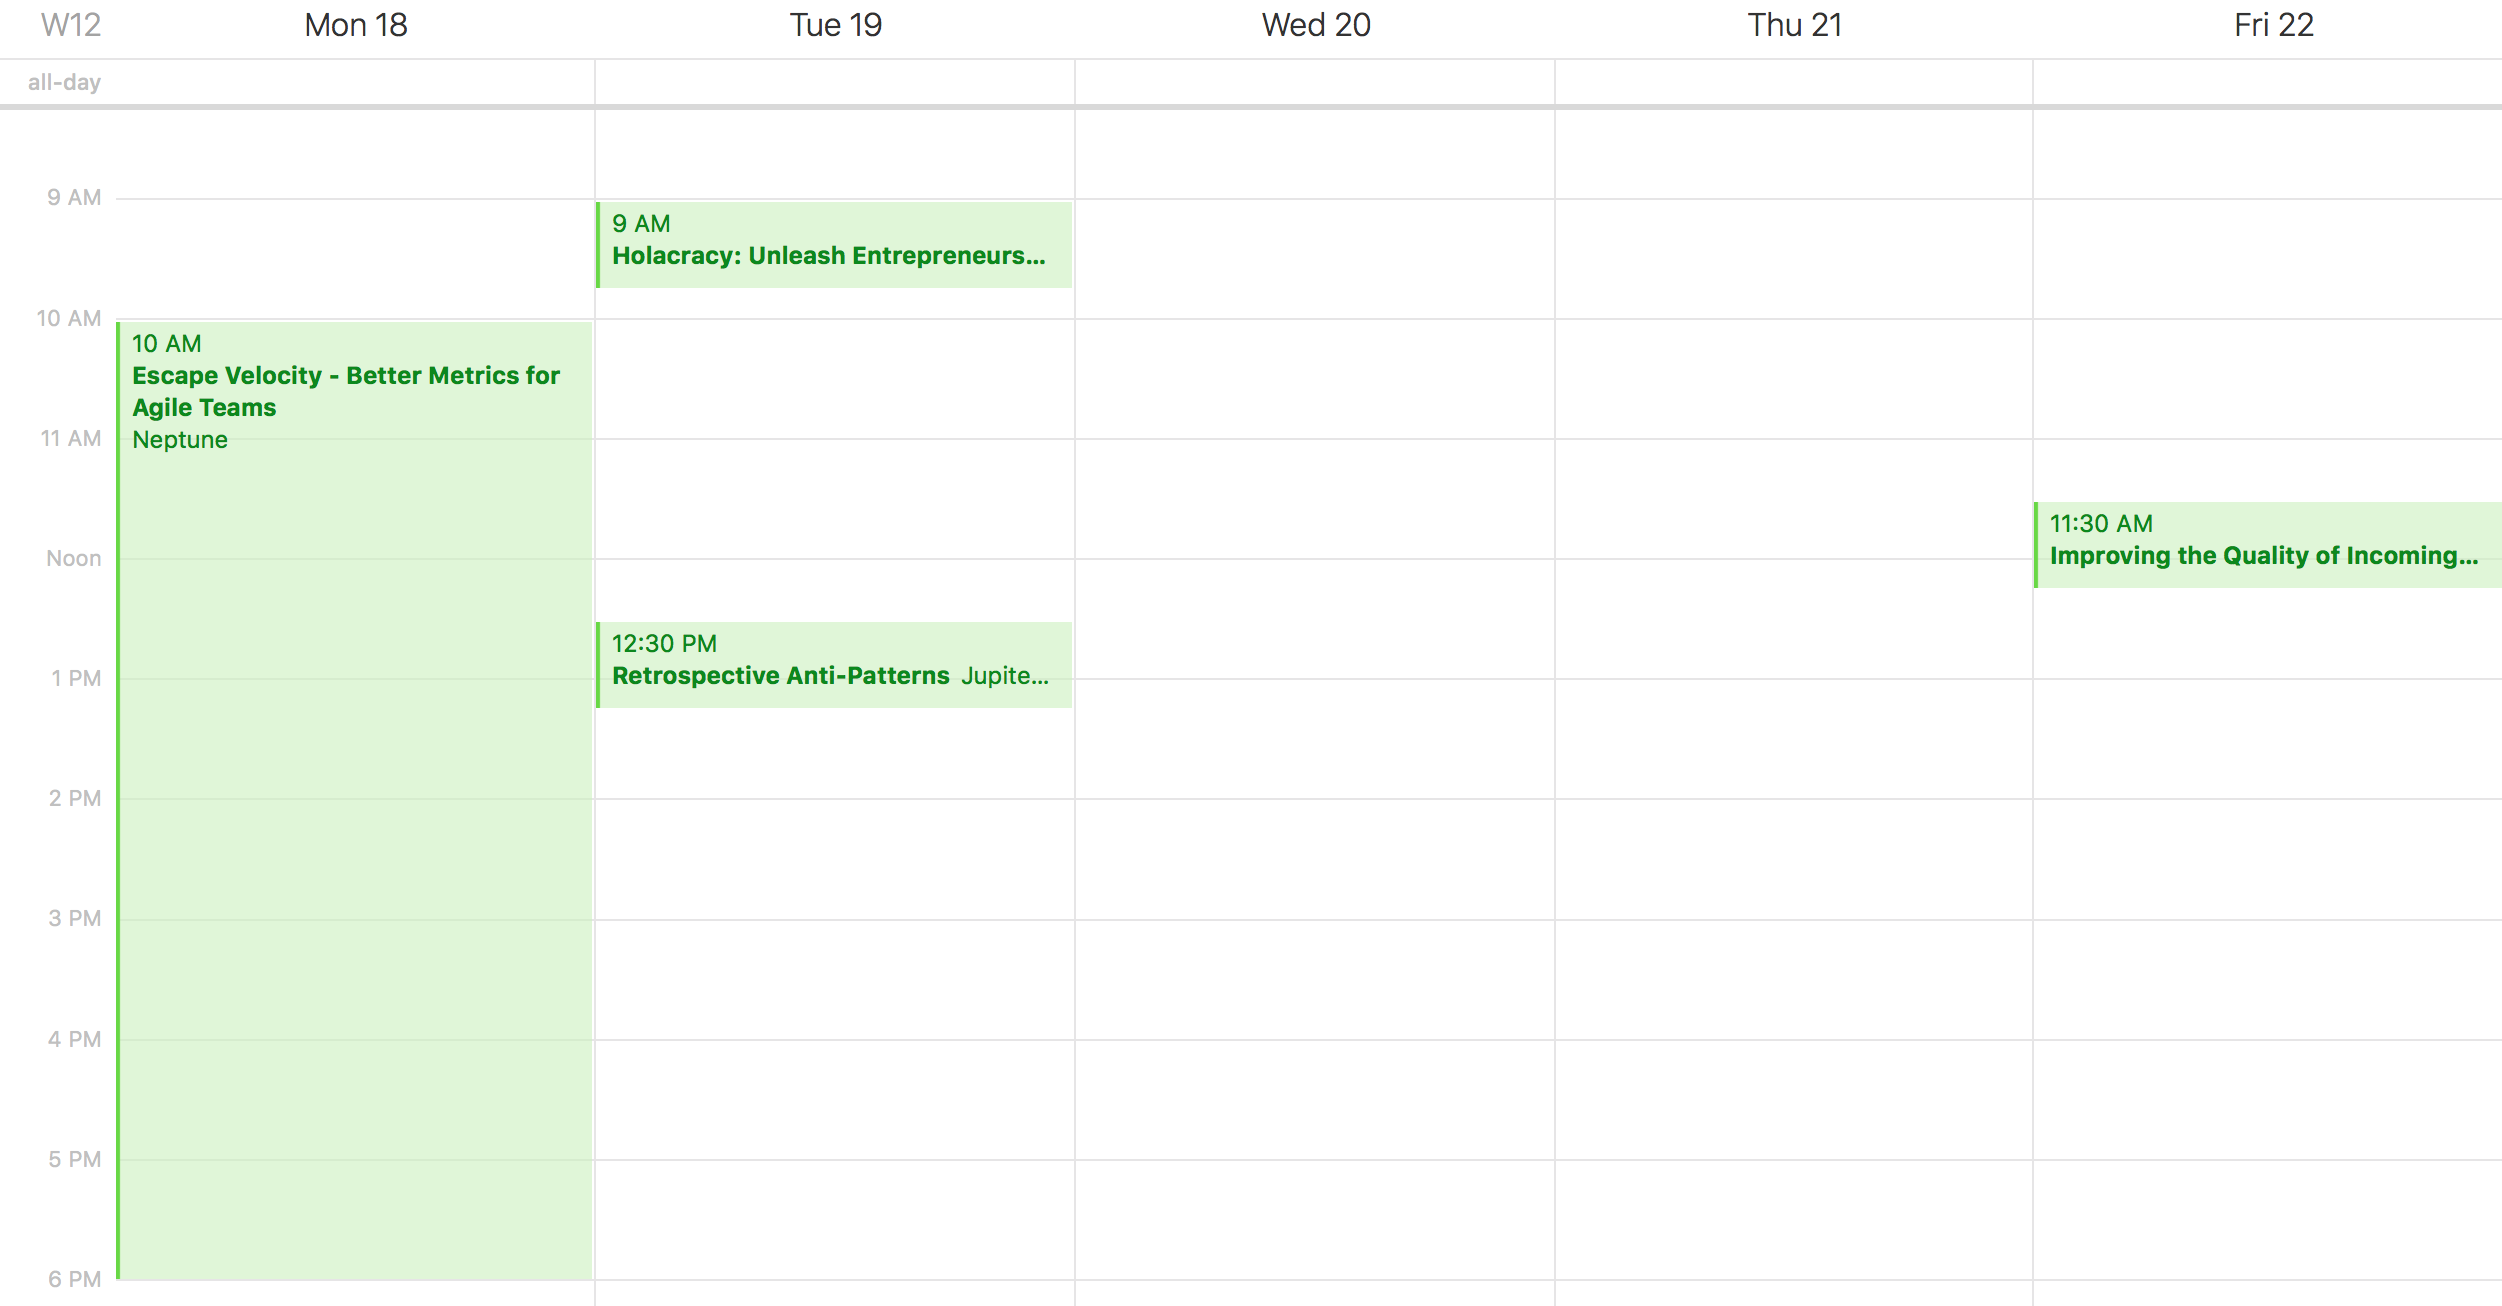 My Schedule imported in a Calendar